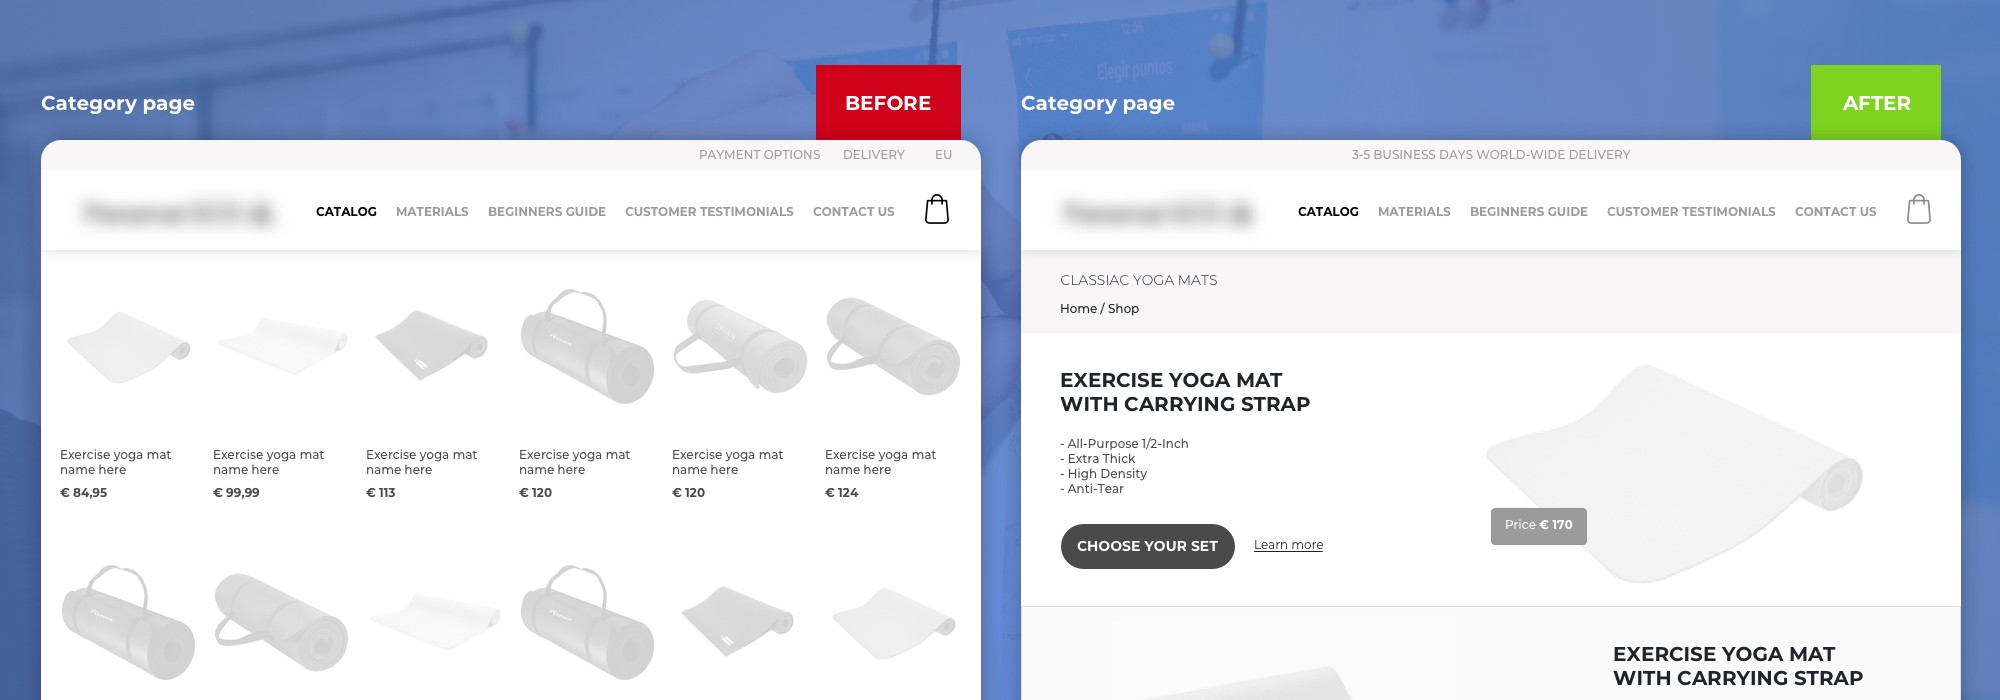 Wireframe of redesigned Category Page